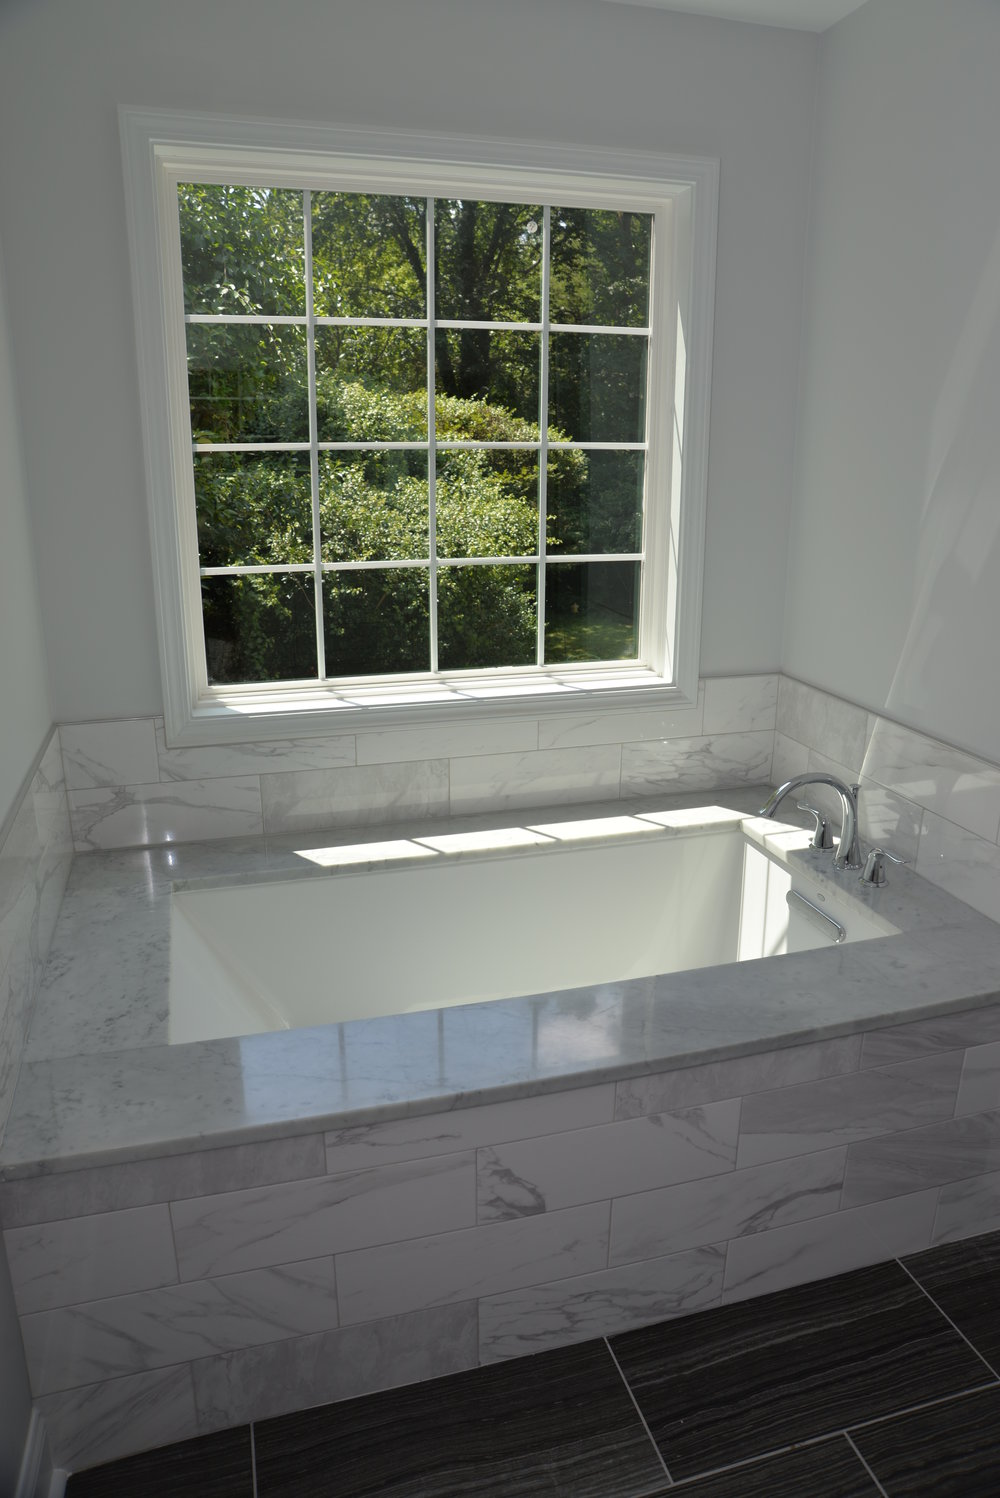 brookmeyer master bath 3.jpg